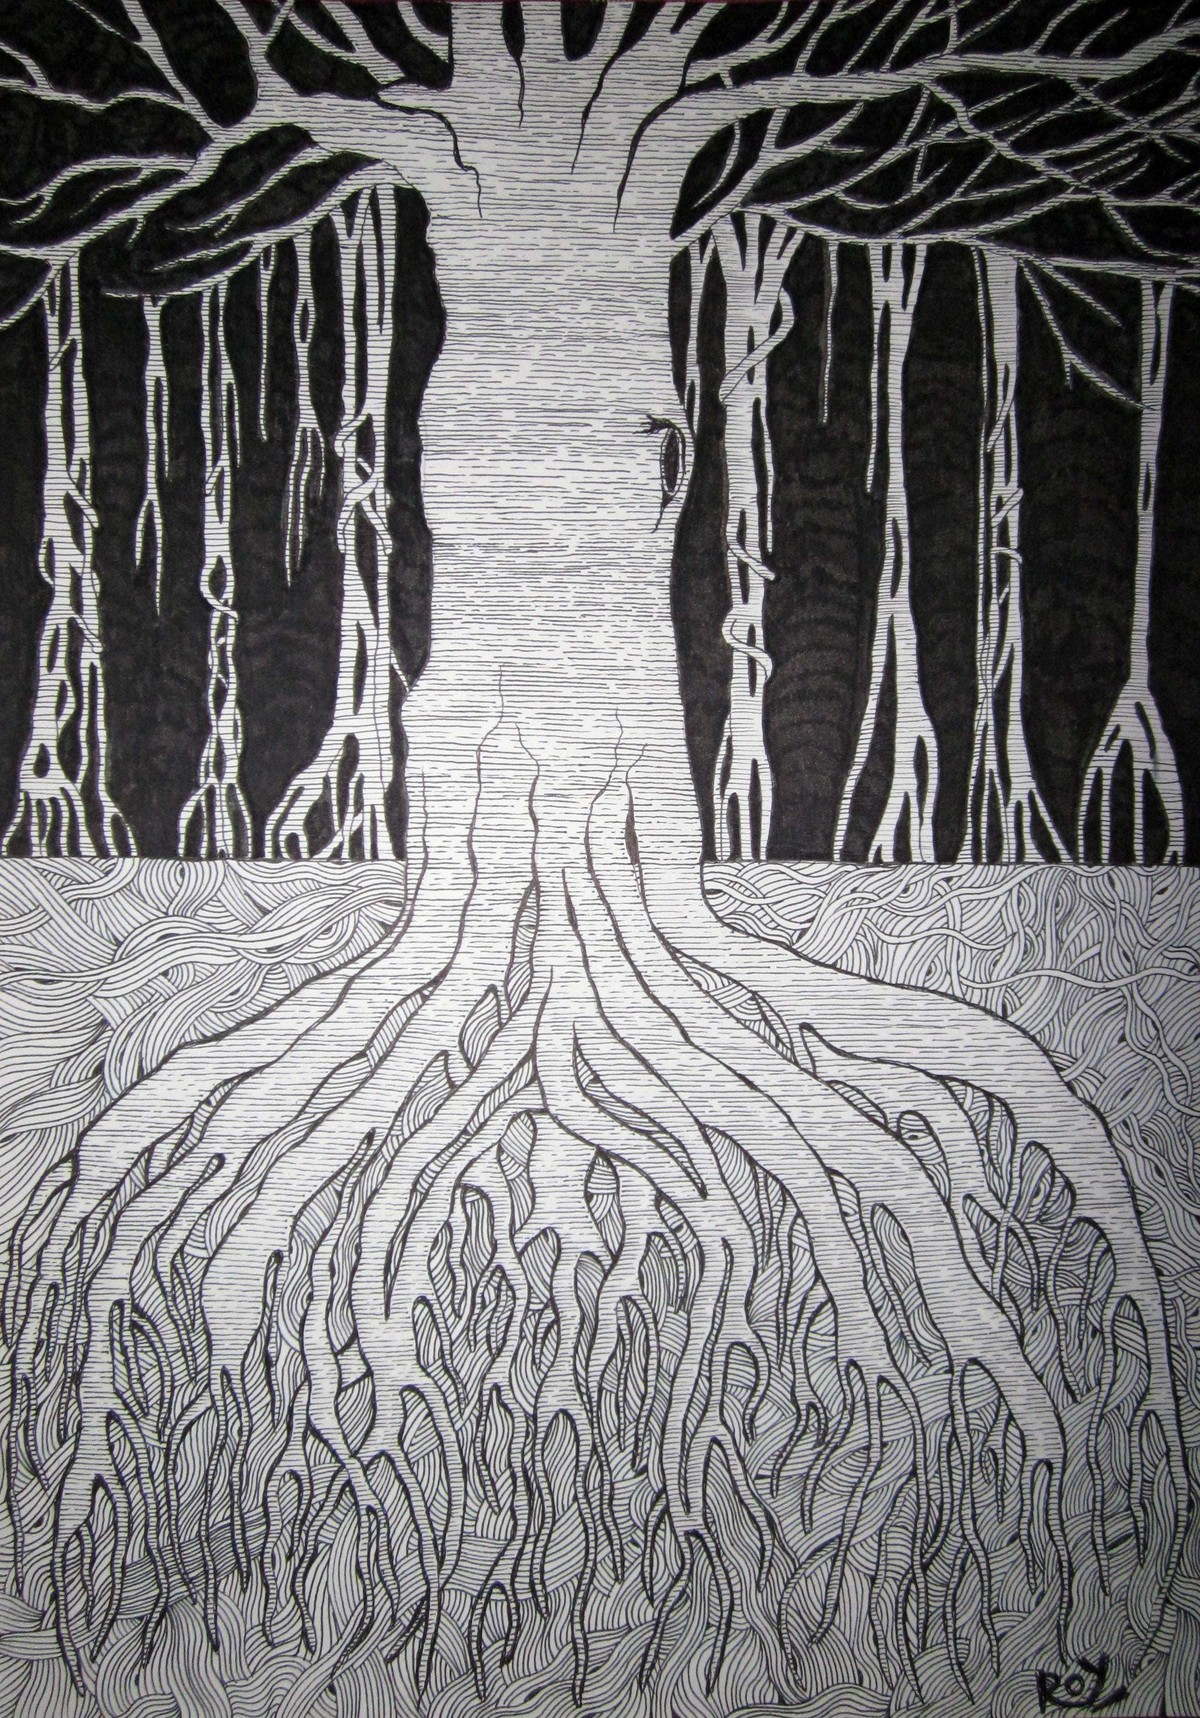 Roots (1) by Priyabrata Roy Chowdhury, Illustration, Illustration Painting, Pen & Ink on Paper, Gray color